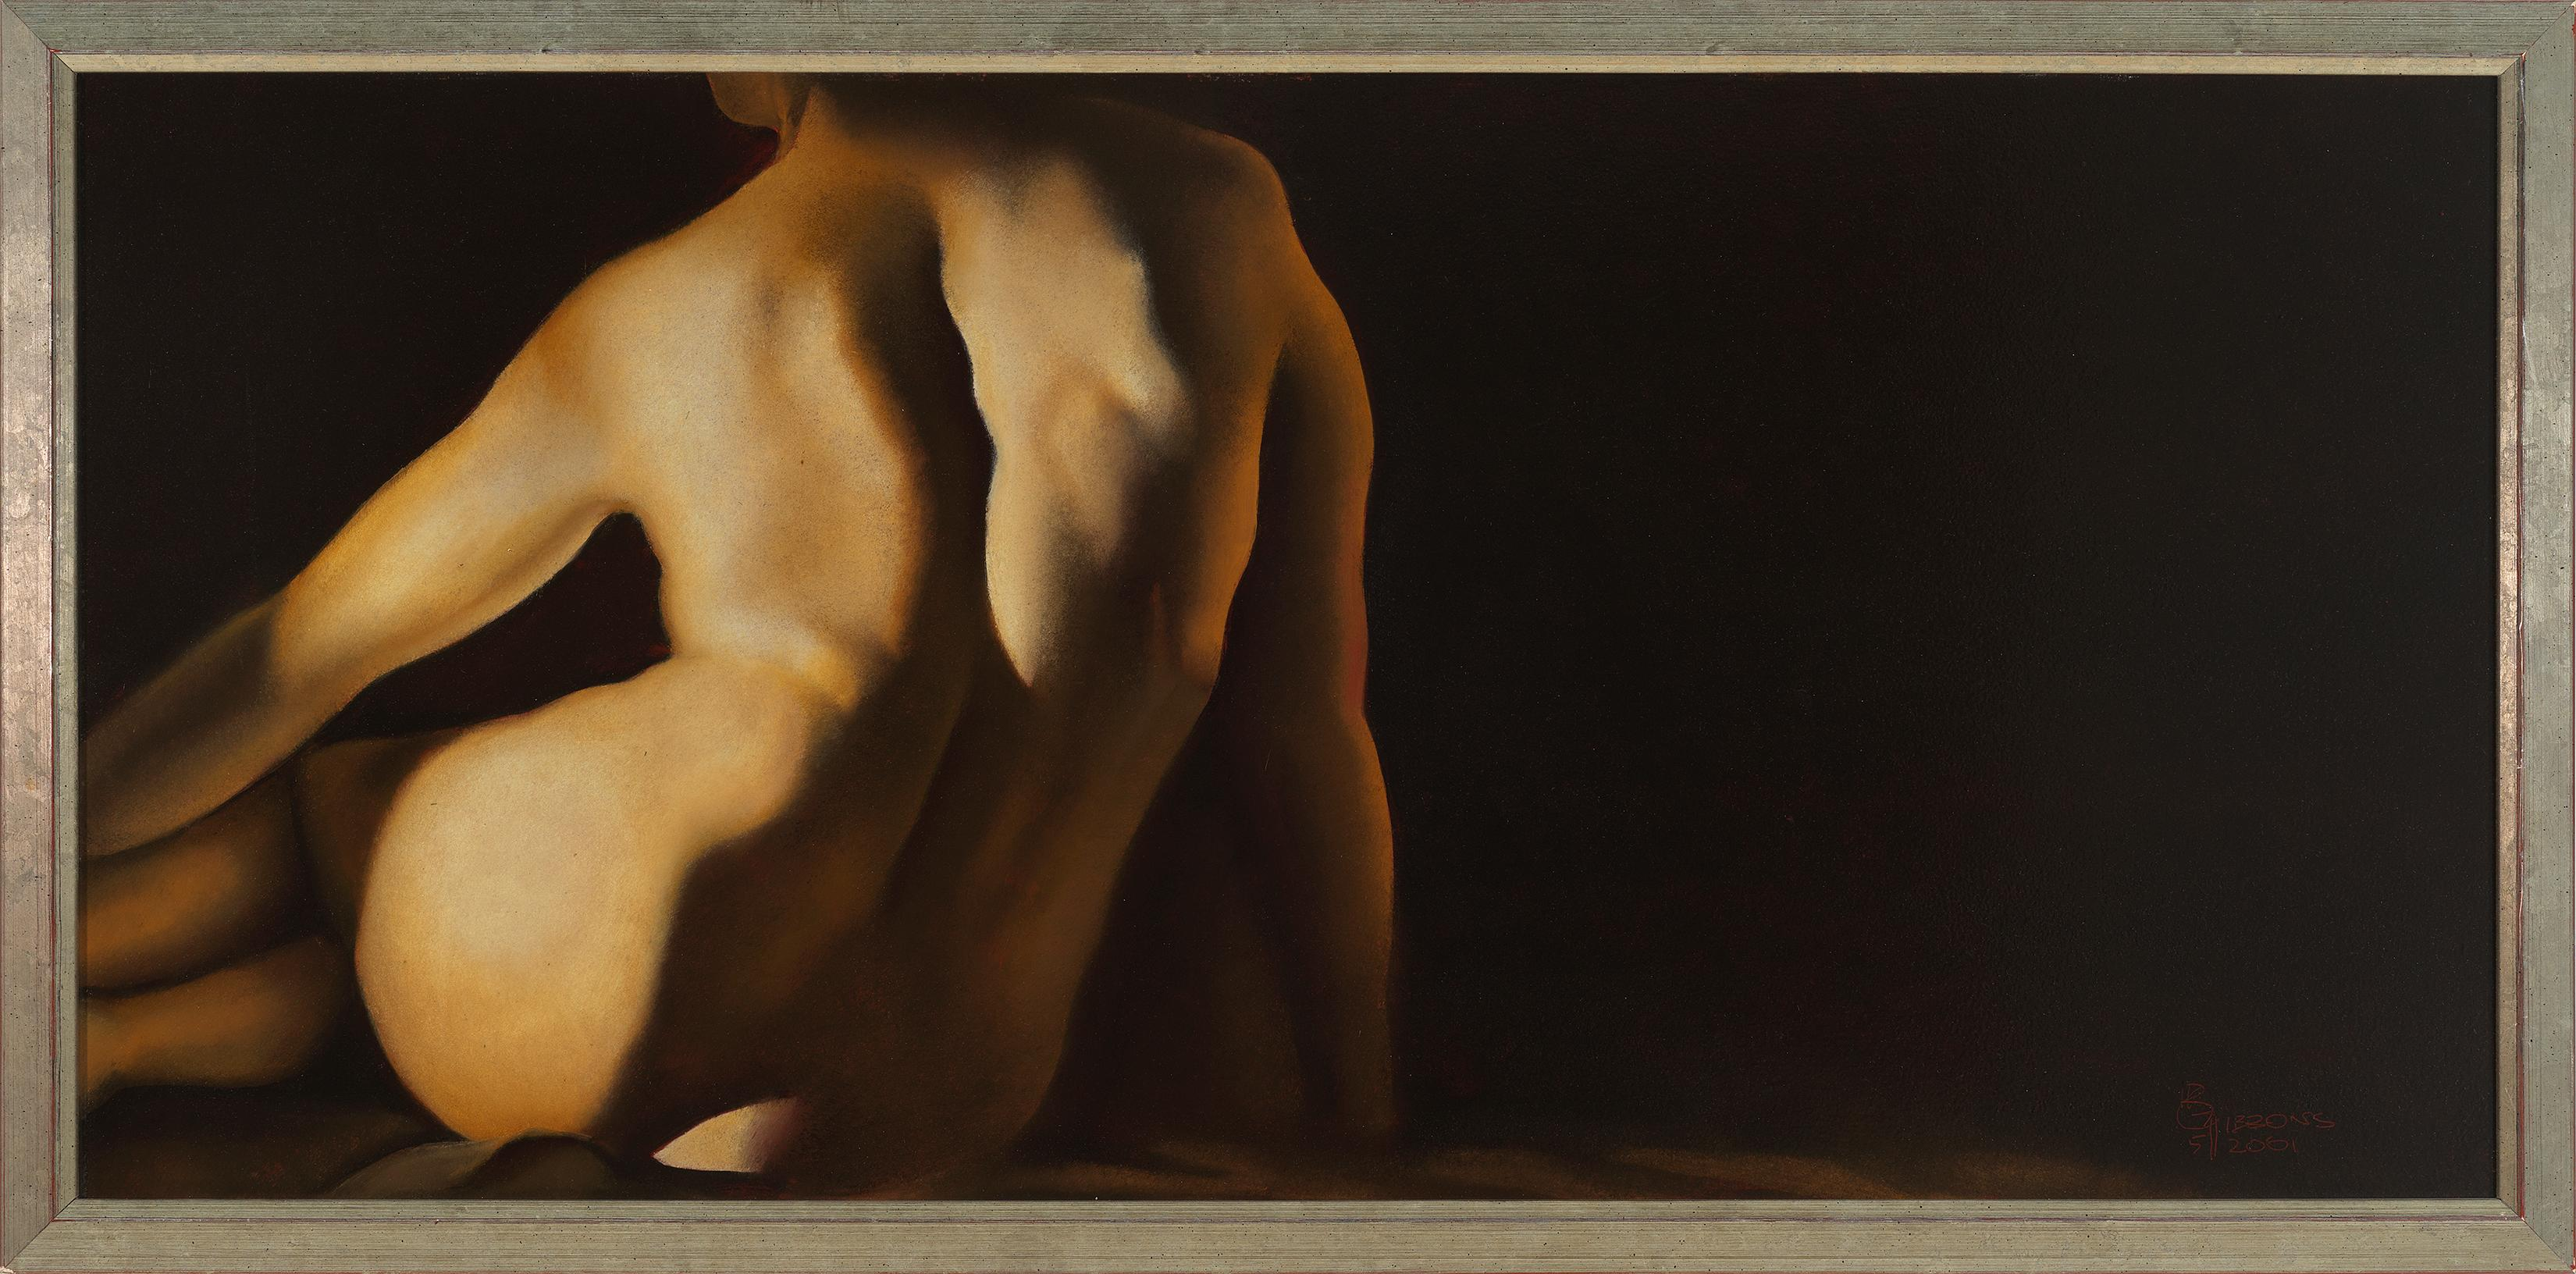 Figure F - Original Oil Painting of Nude Female Figure From Back in Soft Light